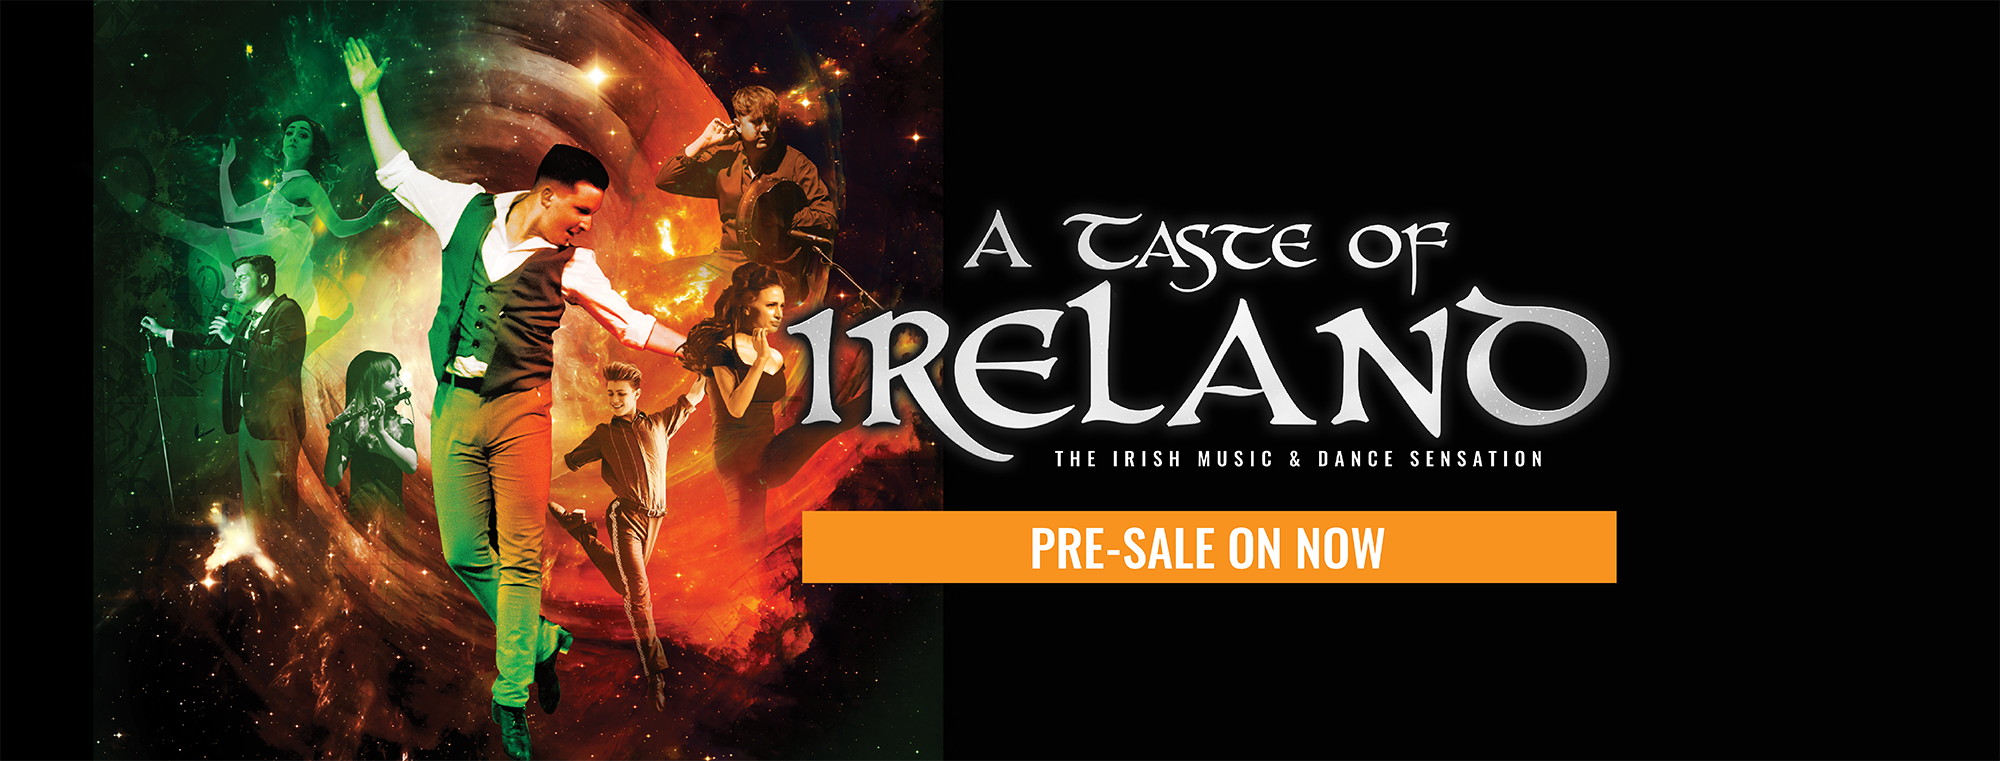 0_7620_21Oct2020125842_Pre-Sale_On_Now_-_TASTE_OF_IRELAND_FACEBOOK_COVER_PAGE.png